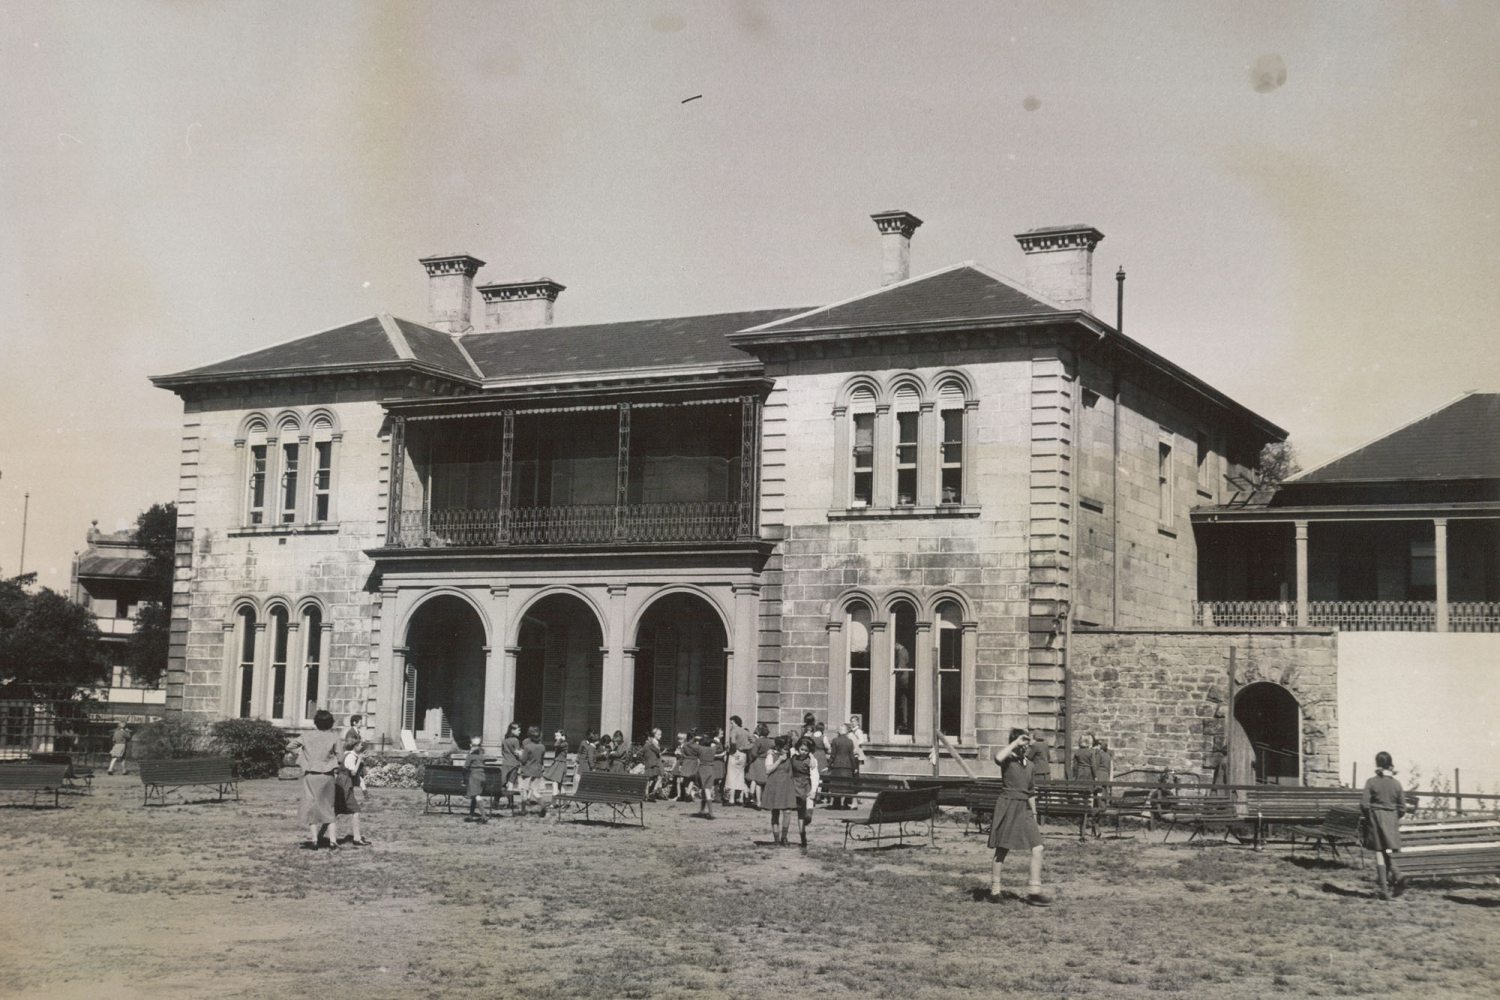 Black and white photo of two storey building with ground floor arches.